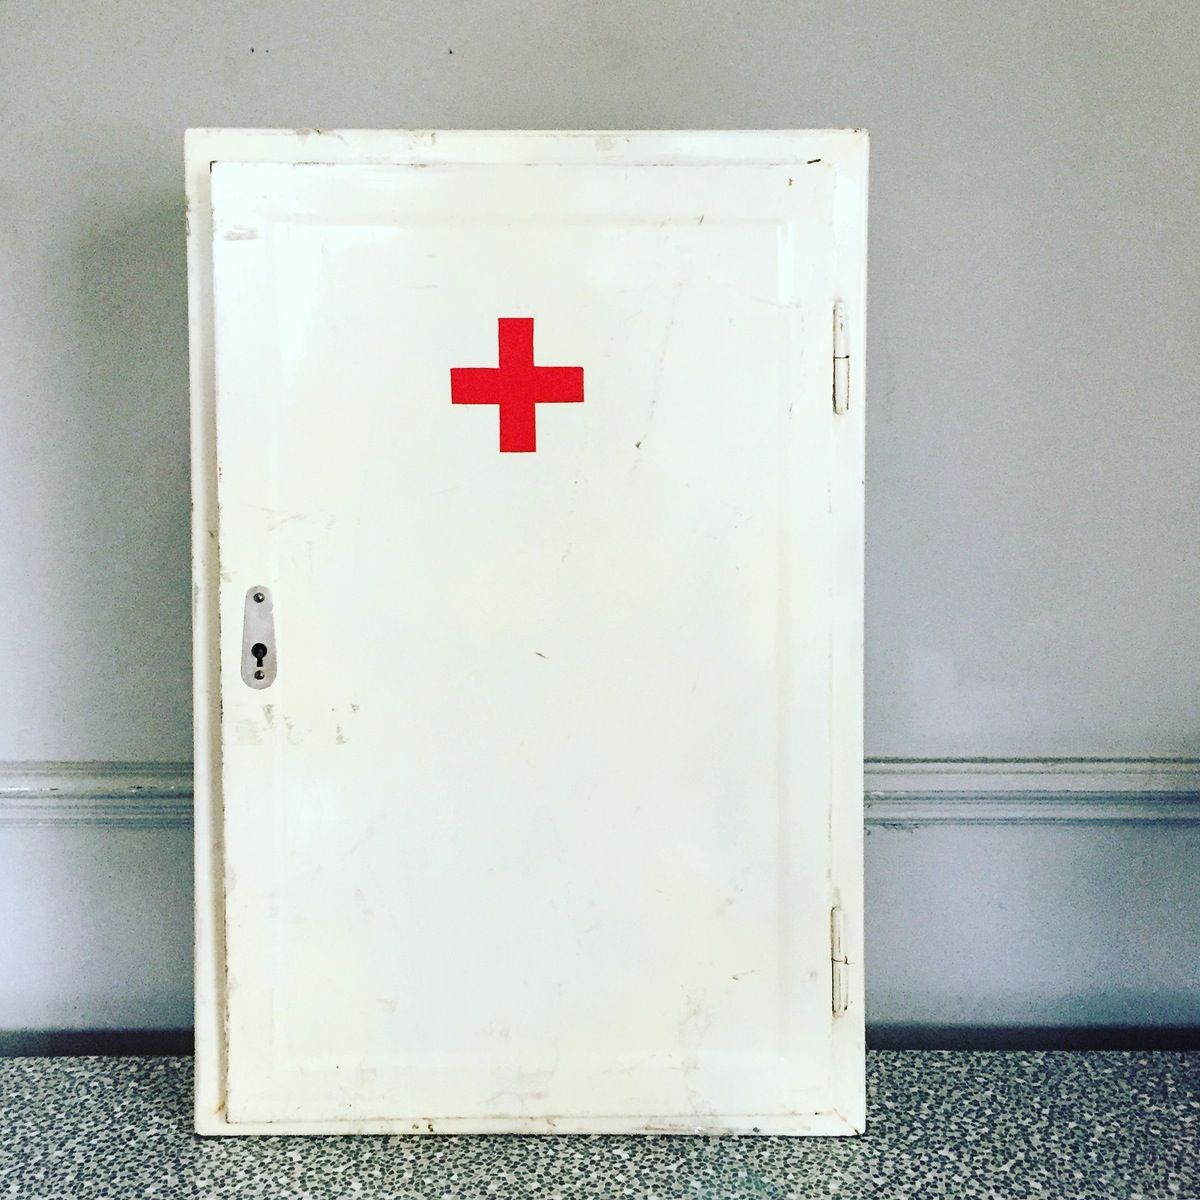 1950 S Cool Vintage White Metal Medicine Cabinet With Glass Doors And Red Cross Wonderful Patina And In Good Vi Glass Cabinet Doors Find Furniture White Metal